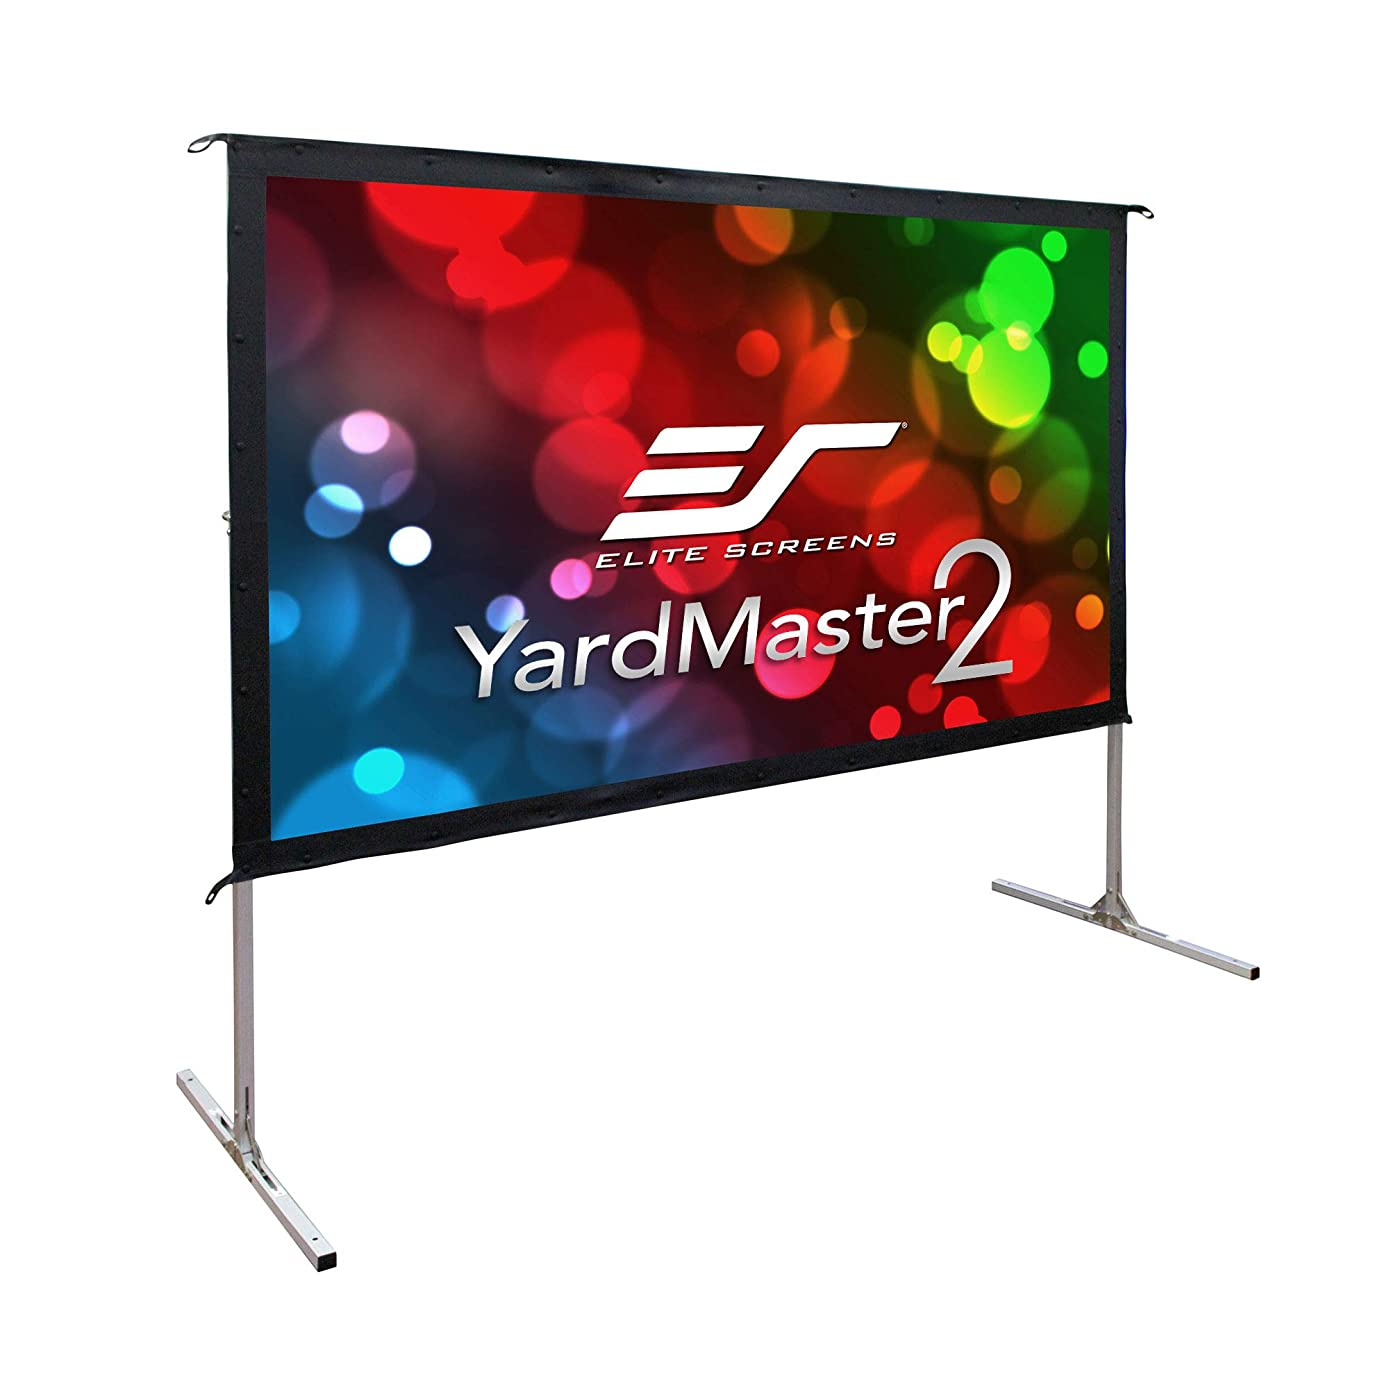 ELITE screens YARD MASTER 2,4英寸16:9,4?K ULTRA HD 便携式 foldaway 电影 theater 投影机屏幕,正面投影?–?OMS 90h2